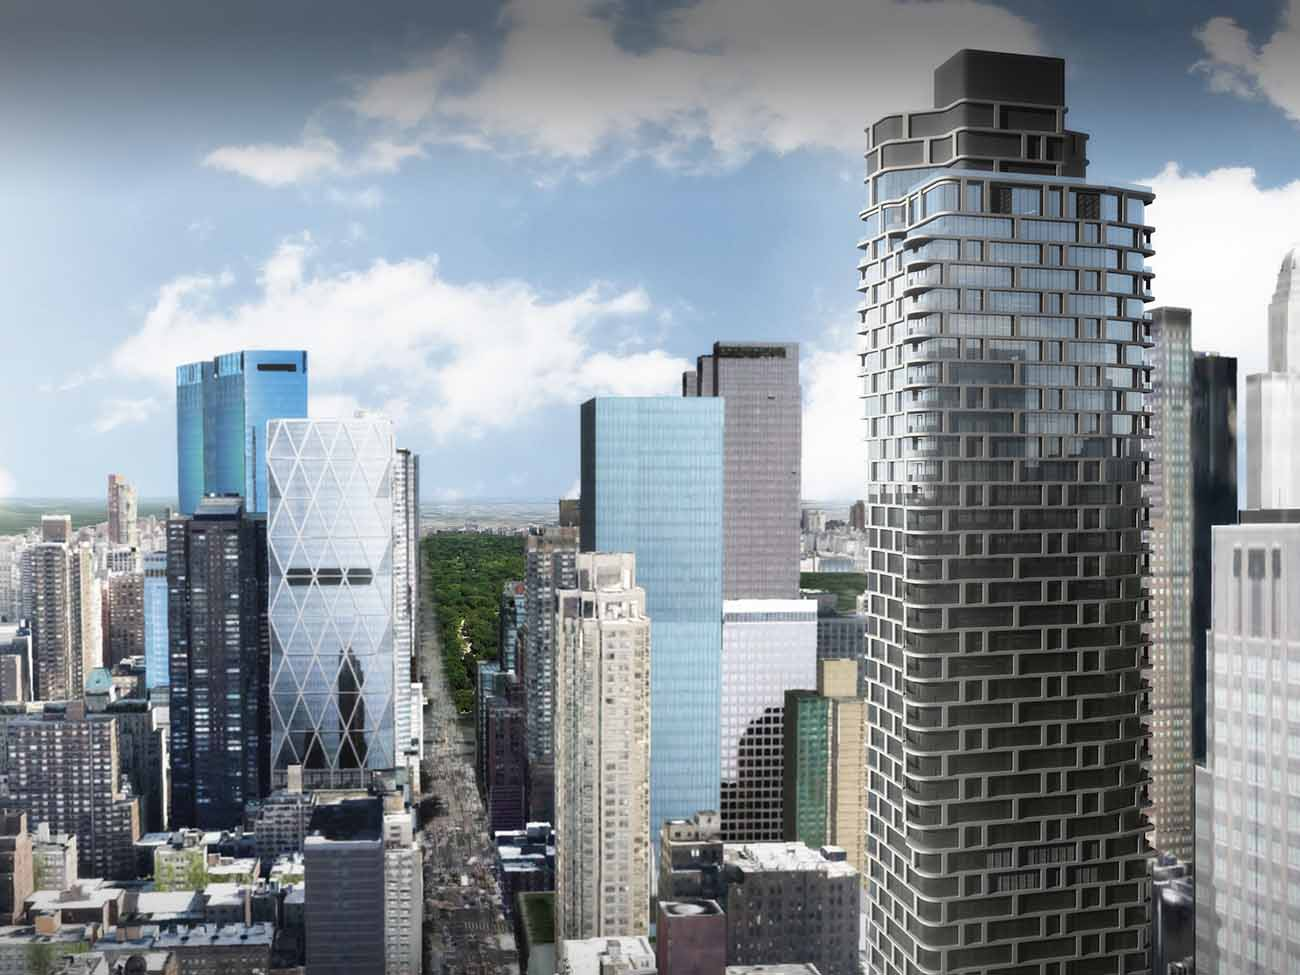 Construction Update: 242 West 53rd Street Nears Top-Off of 62-Story Mixed-Use Tower